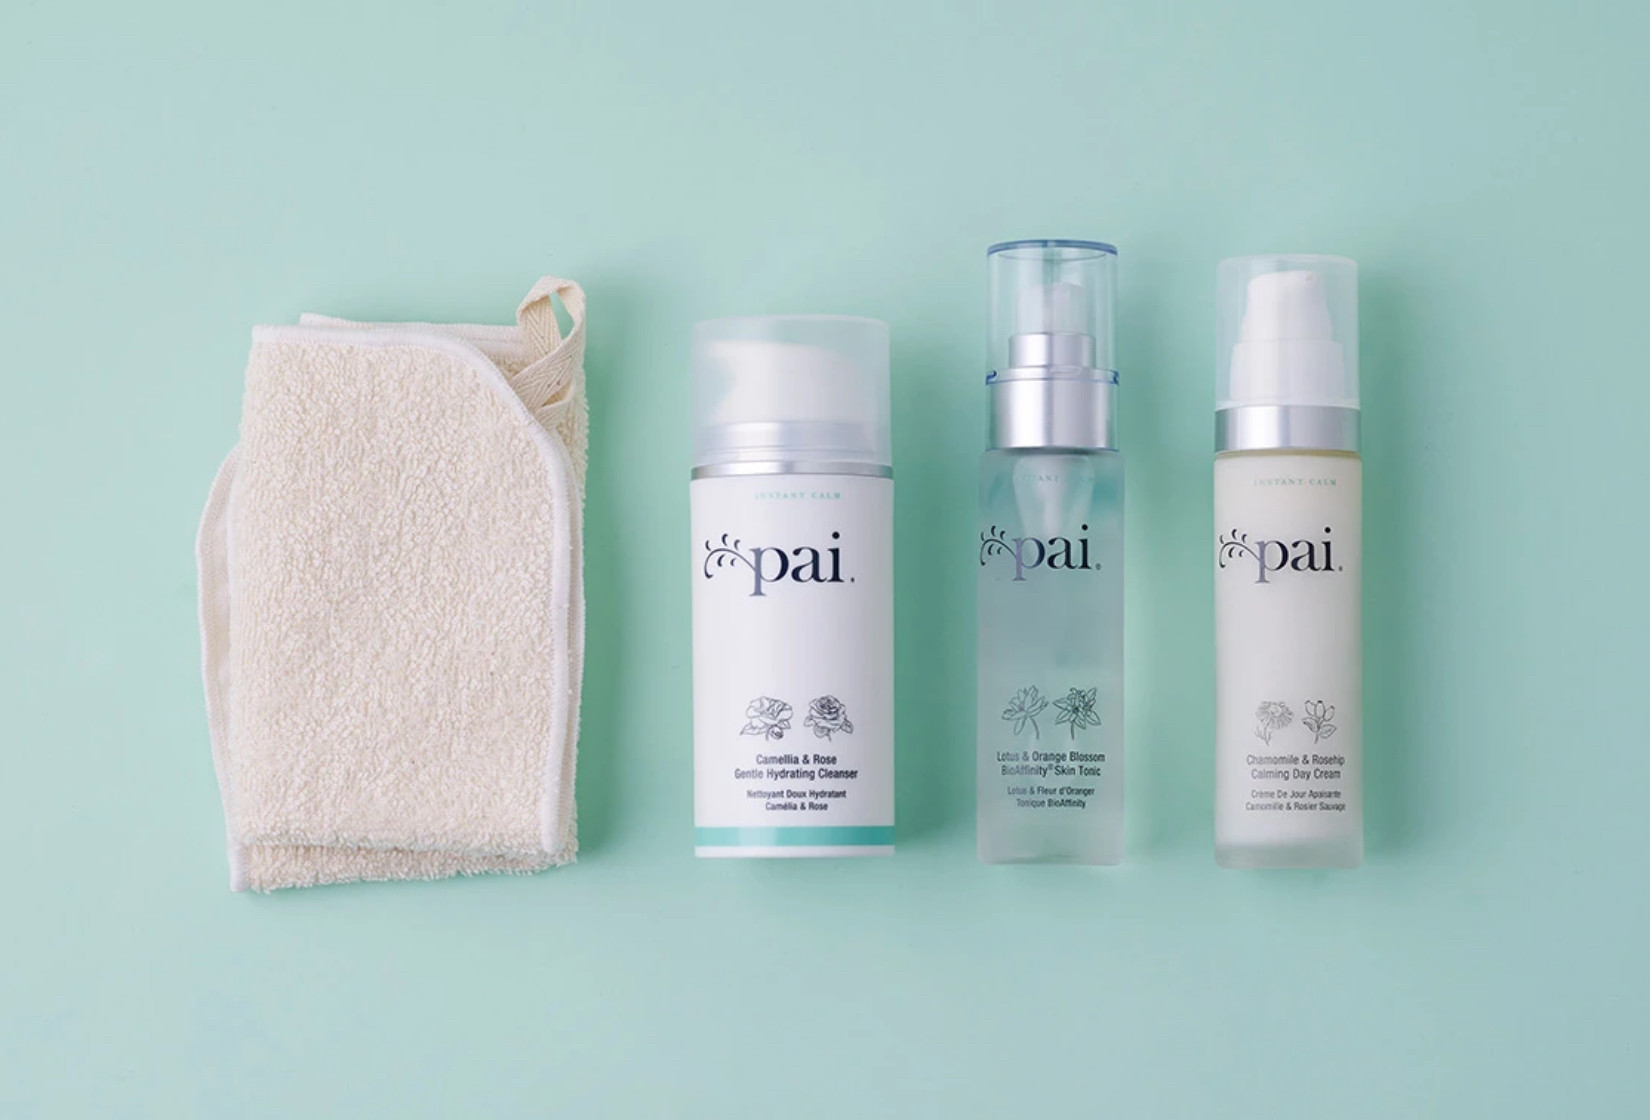 About Pai Skincare